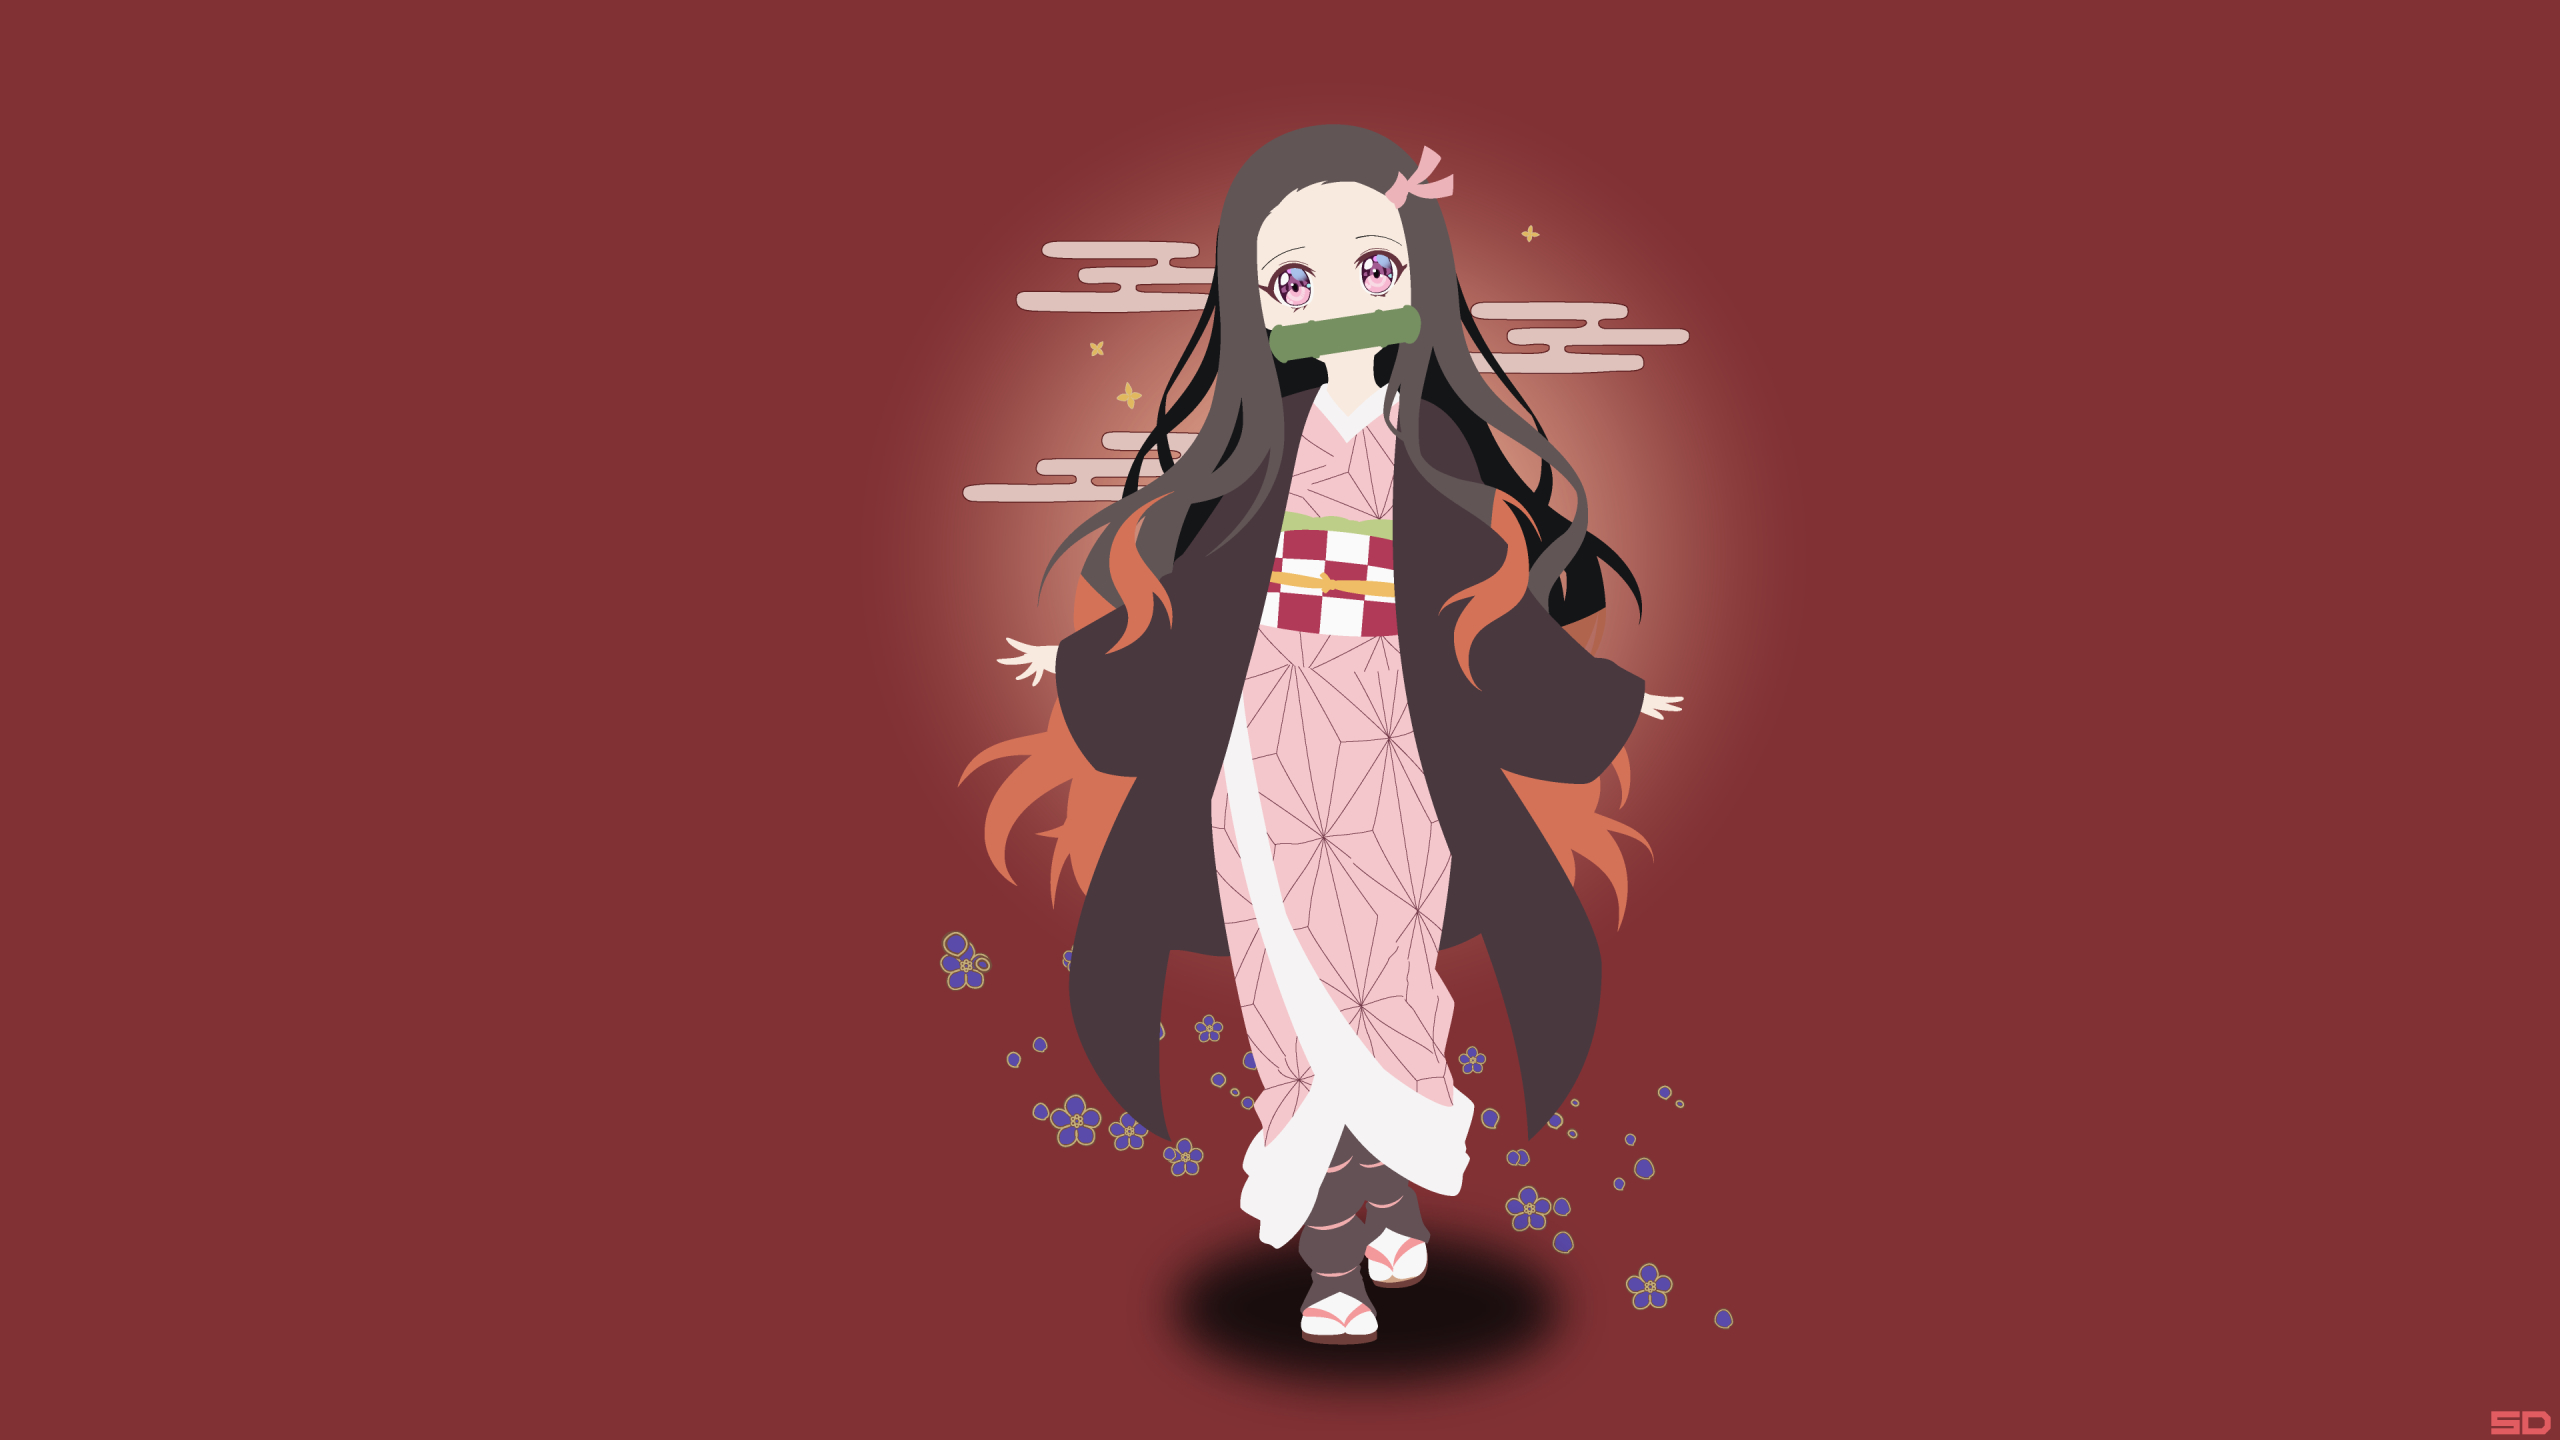 2560x1440 Nezuko 1440P Resolution Wallpaper, HD Anime 4K Wallpapers, Images, Photos and Background